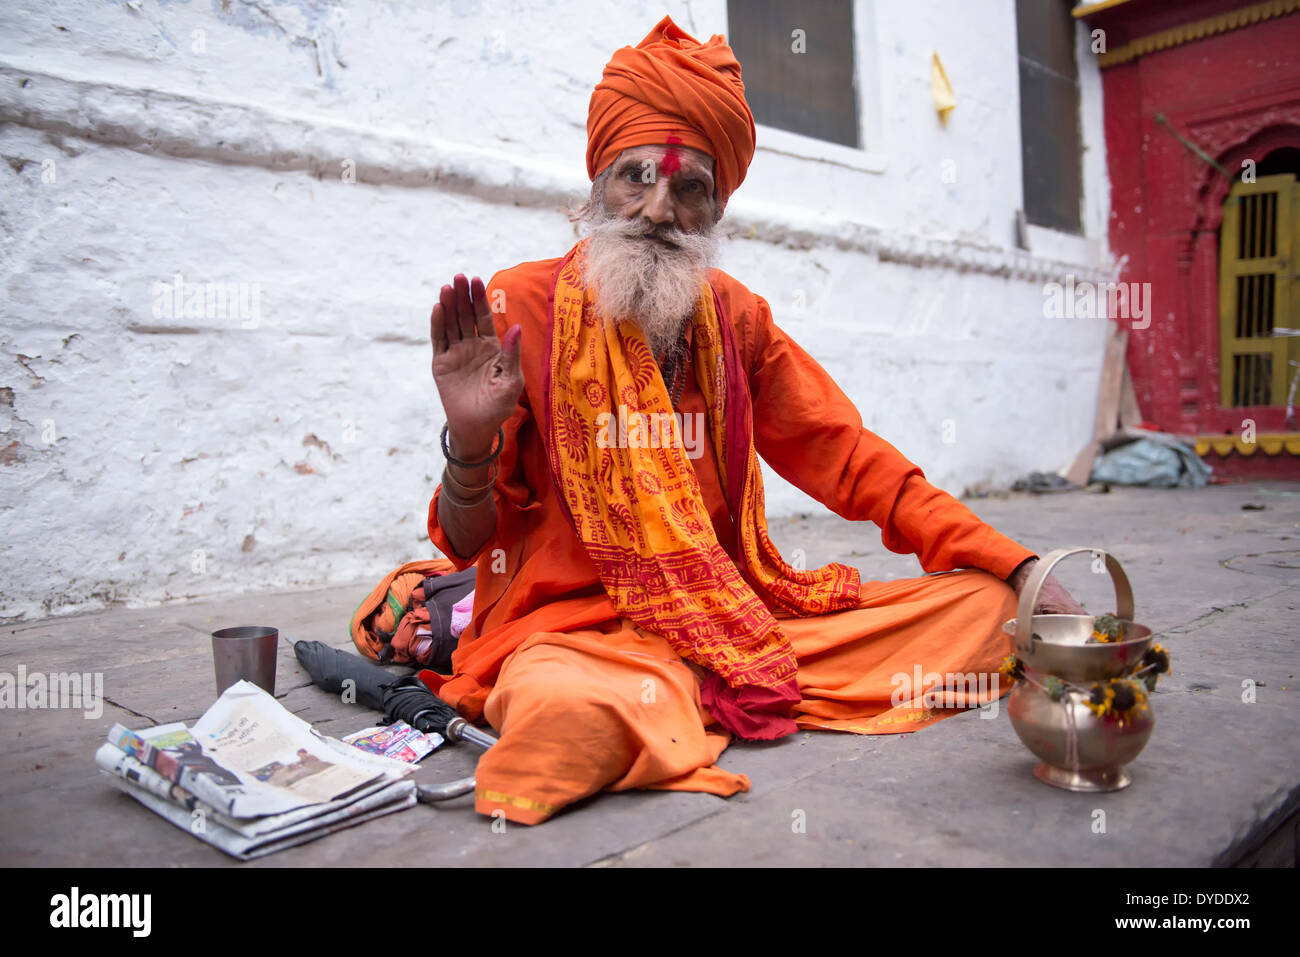 Portrait of a sadhu or holy man. - Stock Image